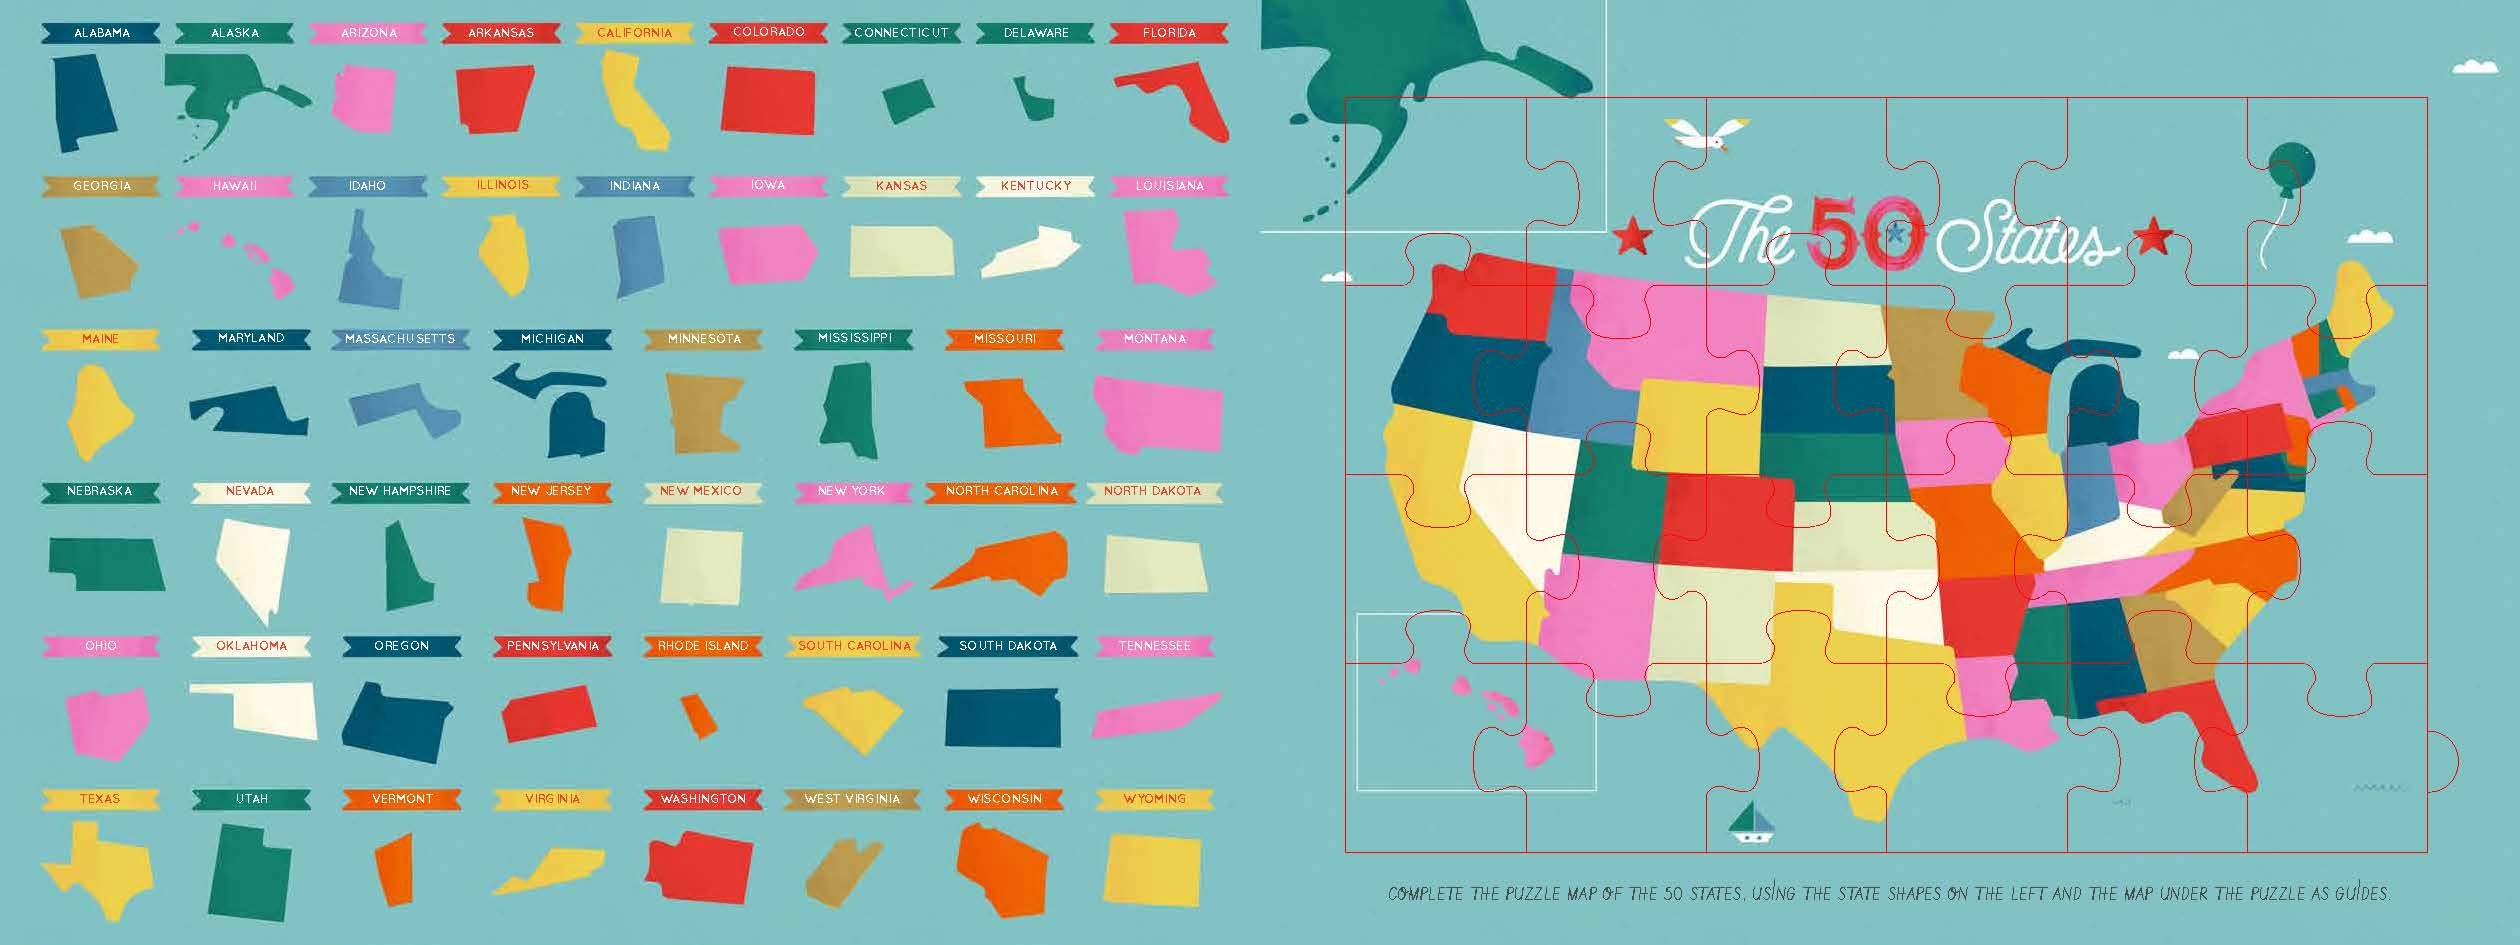 celebrate-picture-books-picture-book-review-the-50-states-fun-facts-puzzle